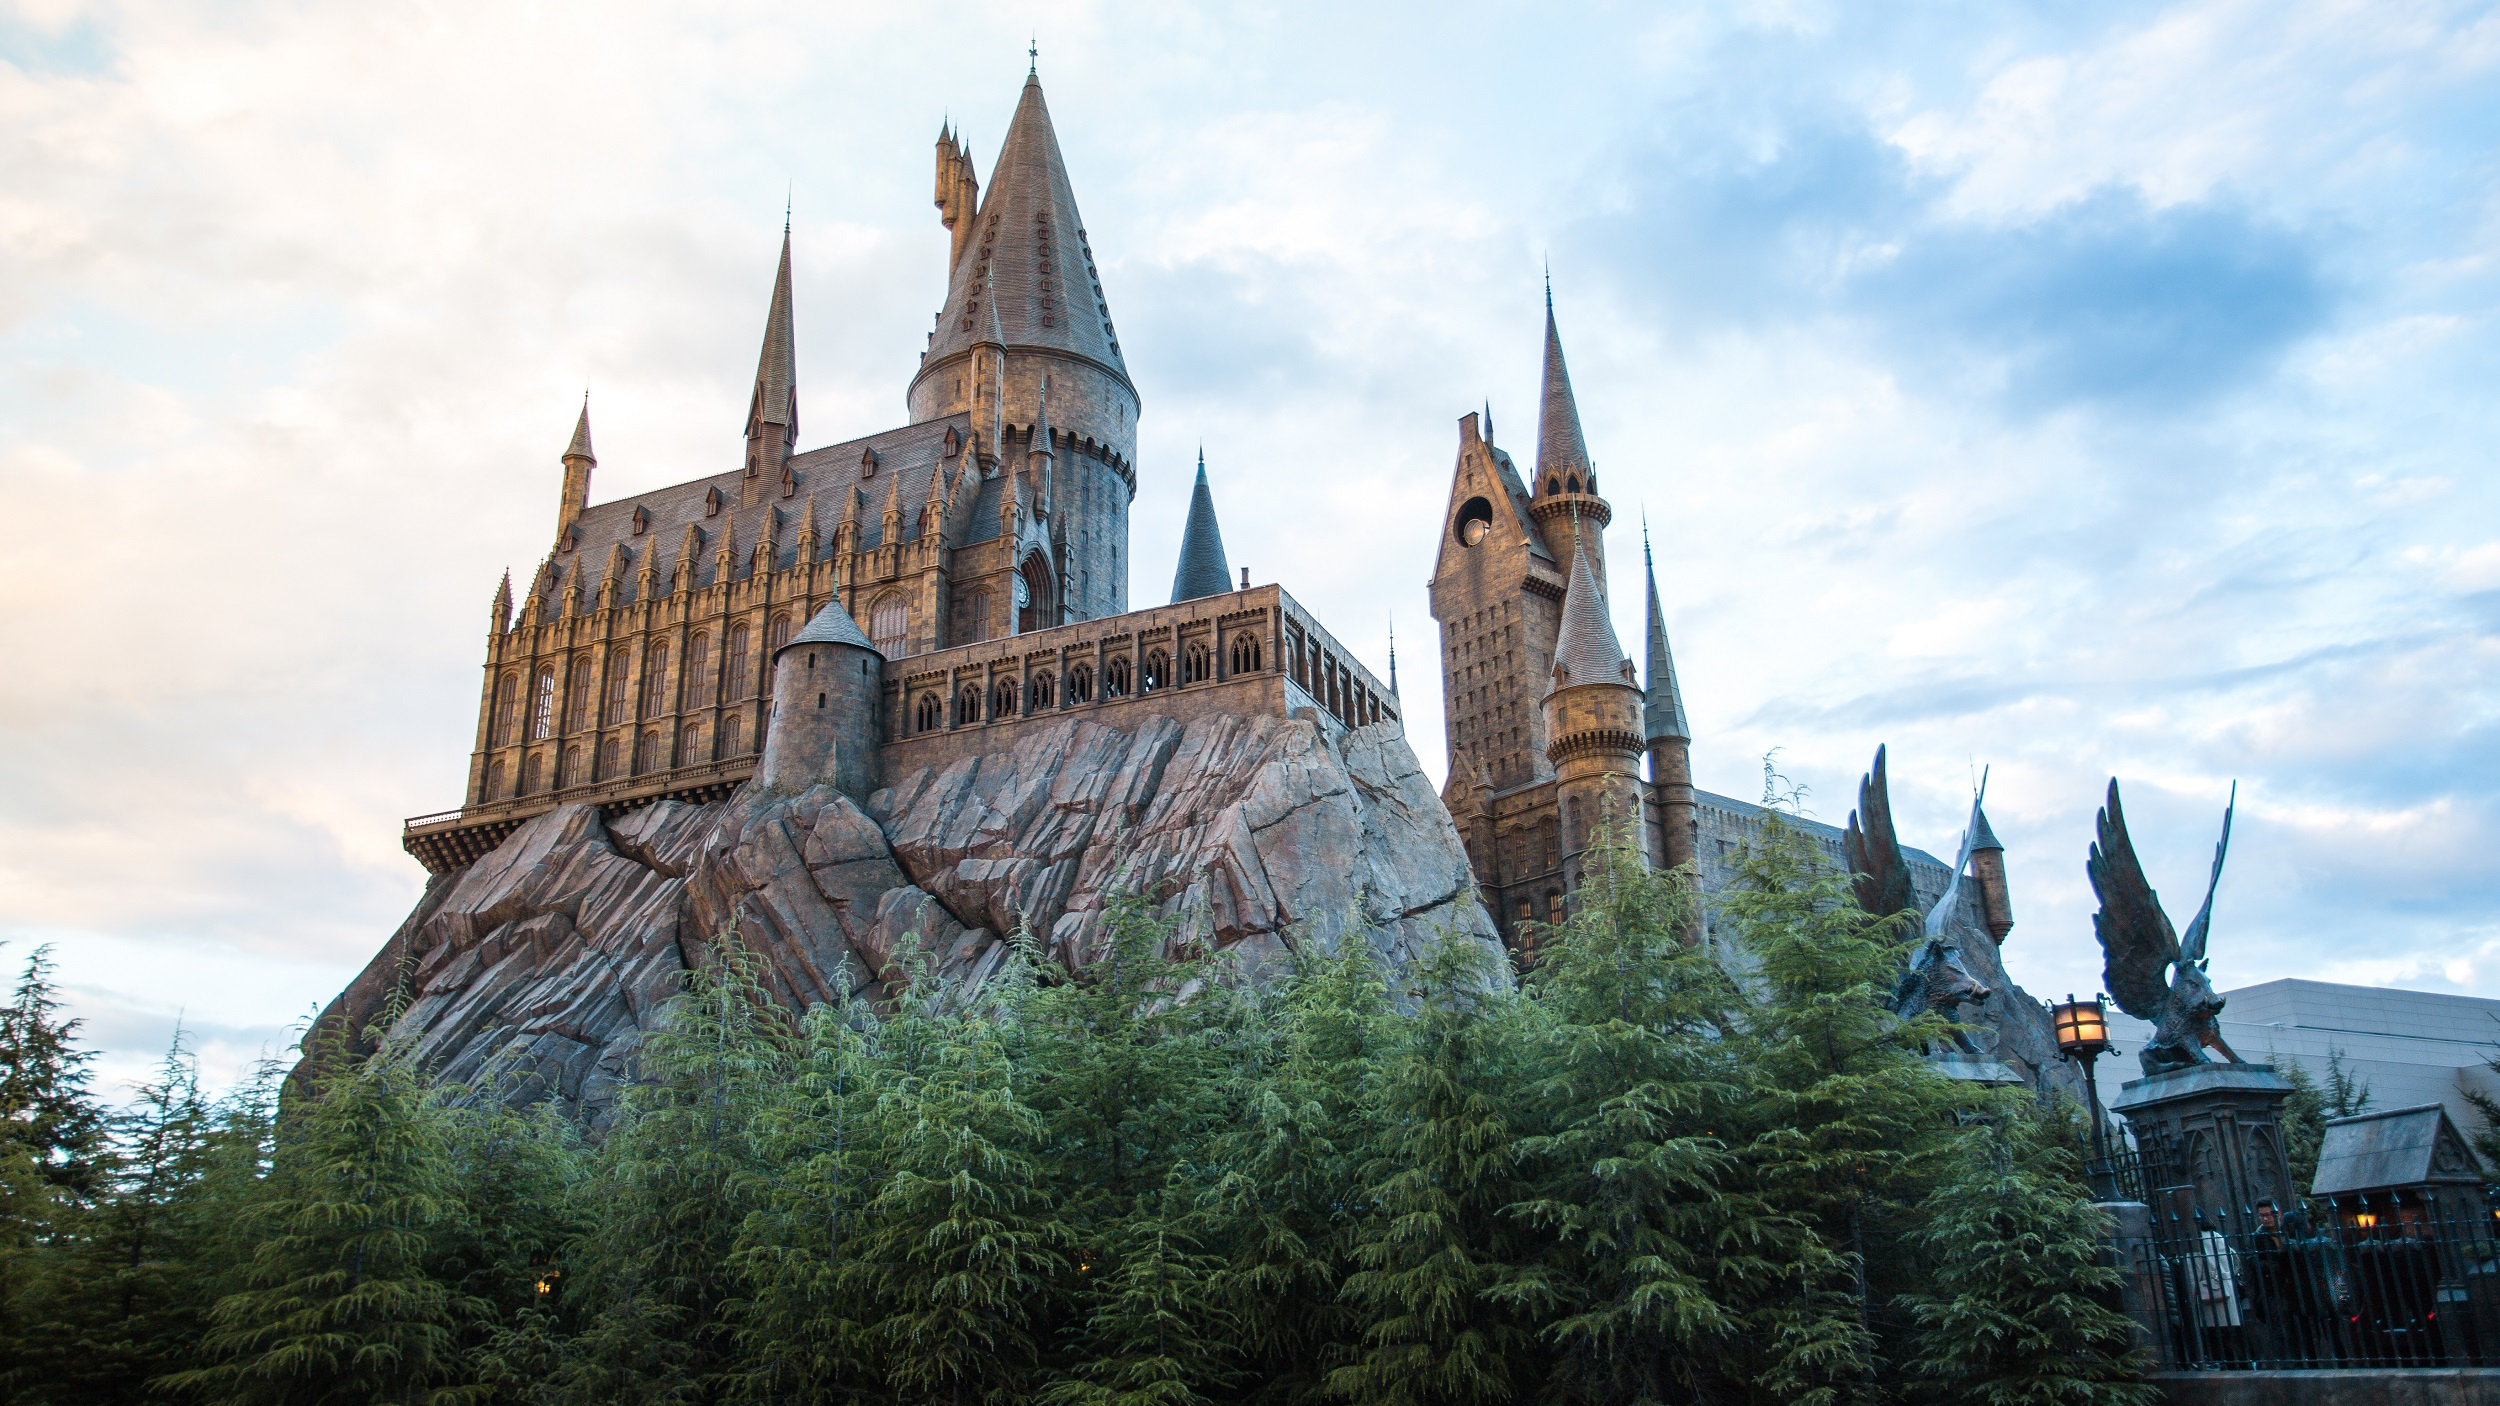 Build Your Own Hogwarts Castle With Lego's Newest, Biggest Harry Potter Set